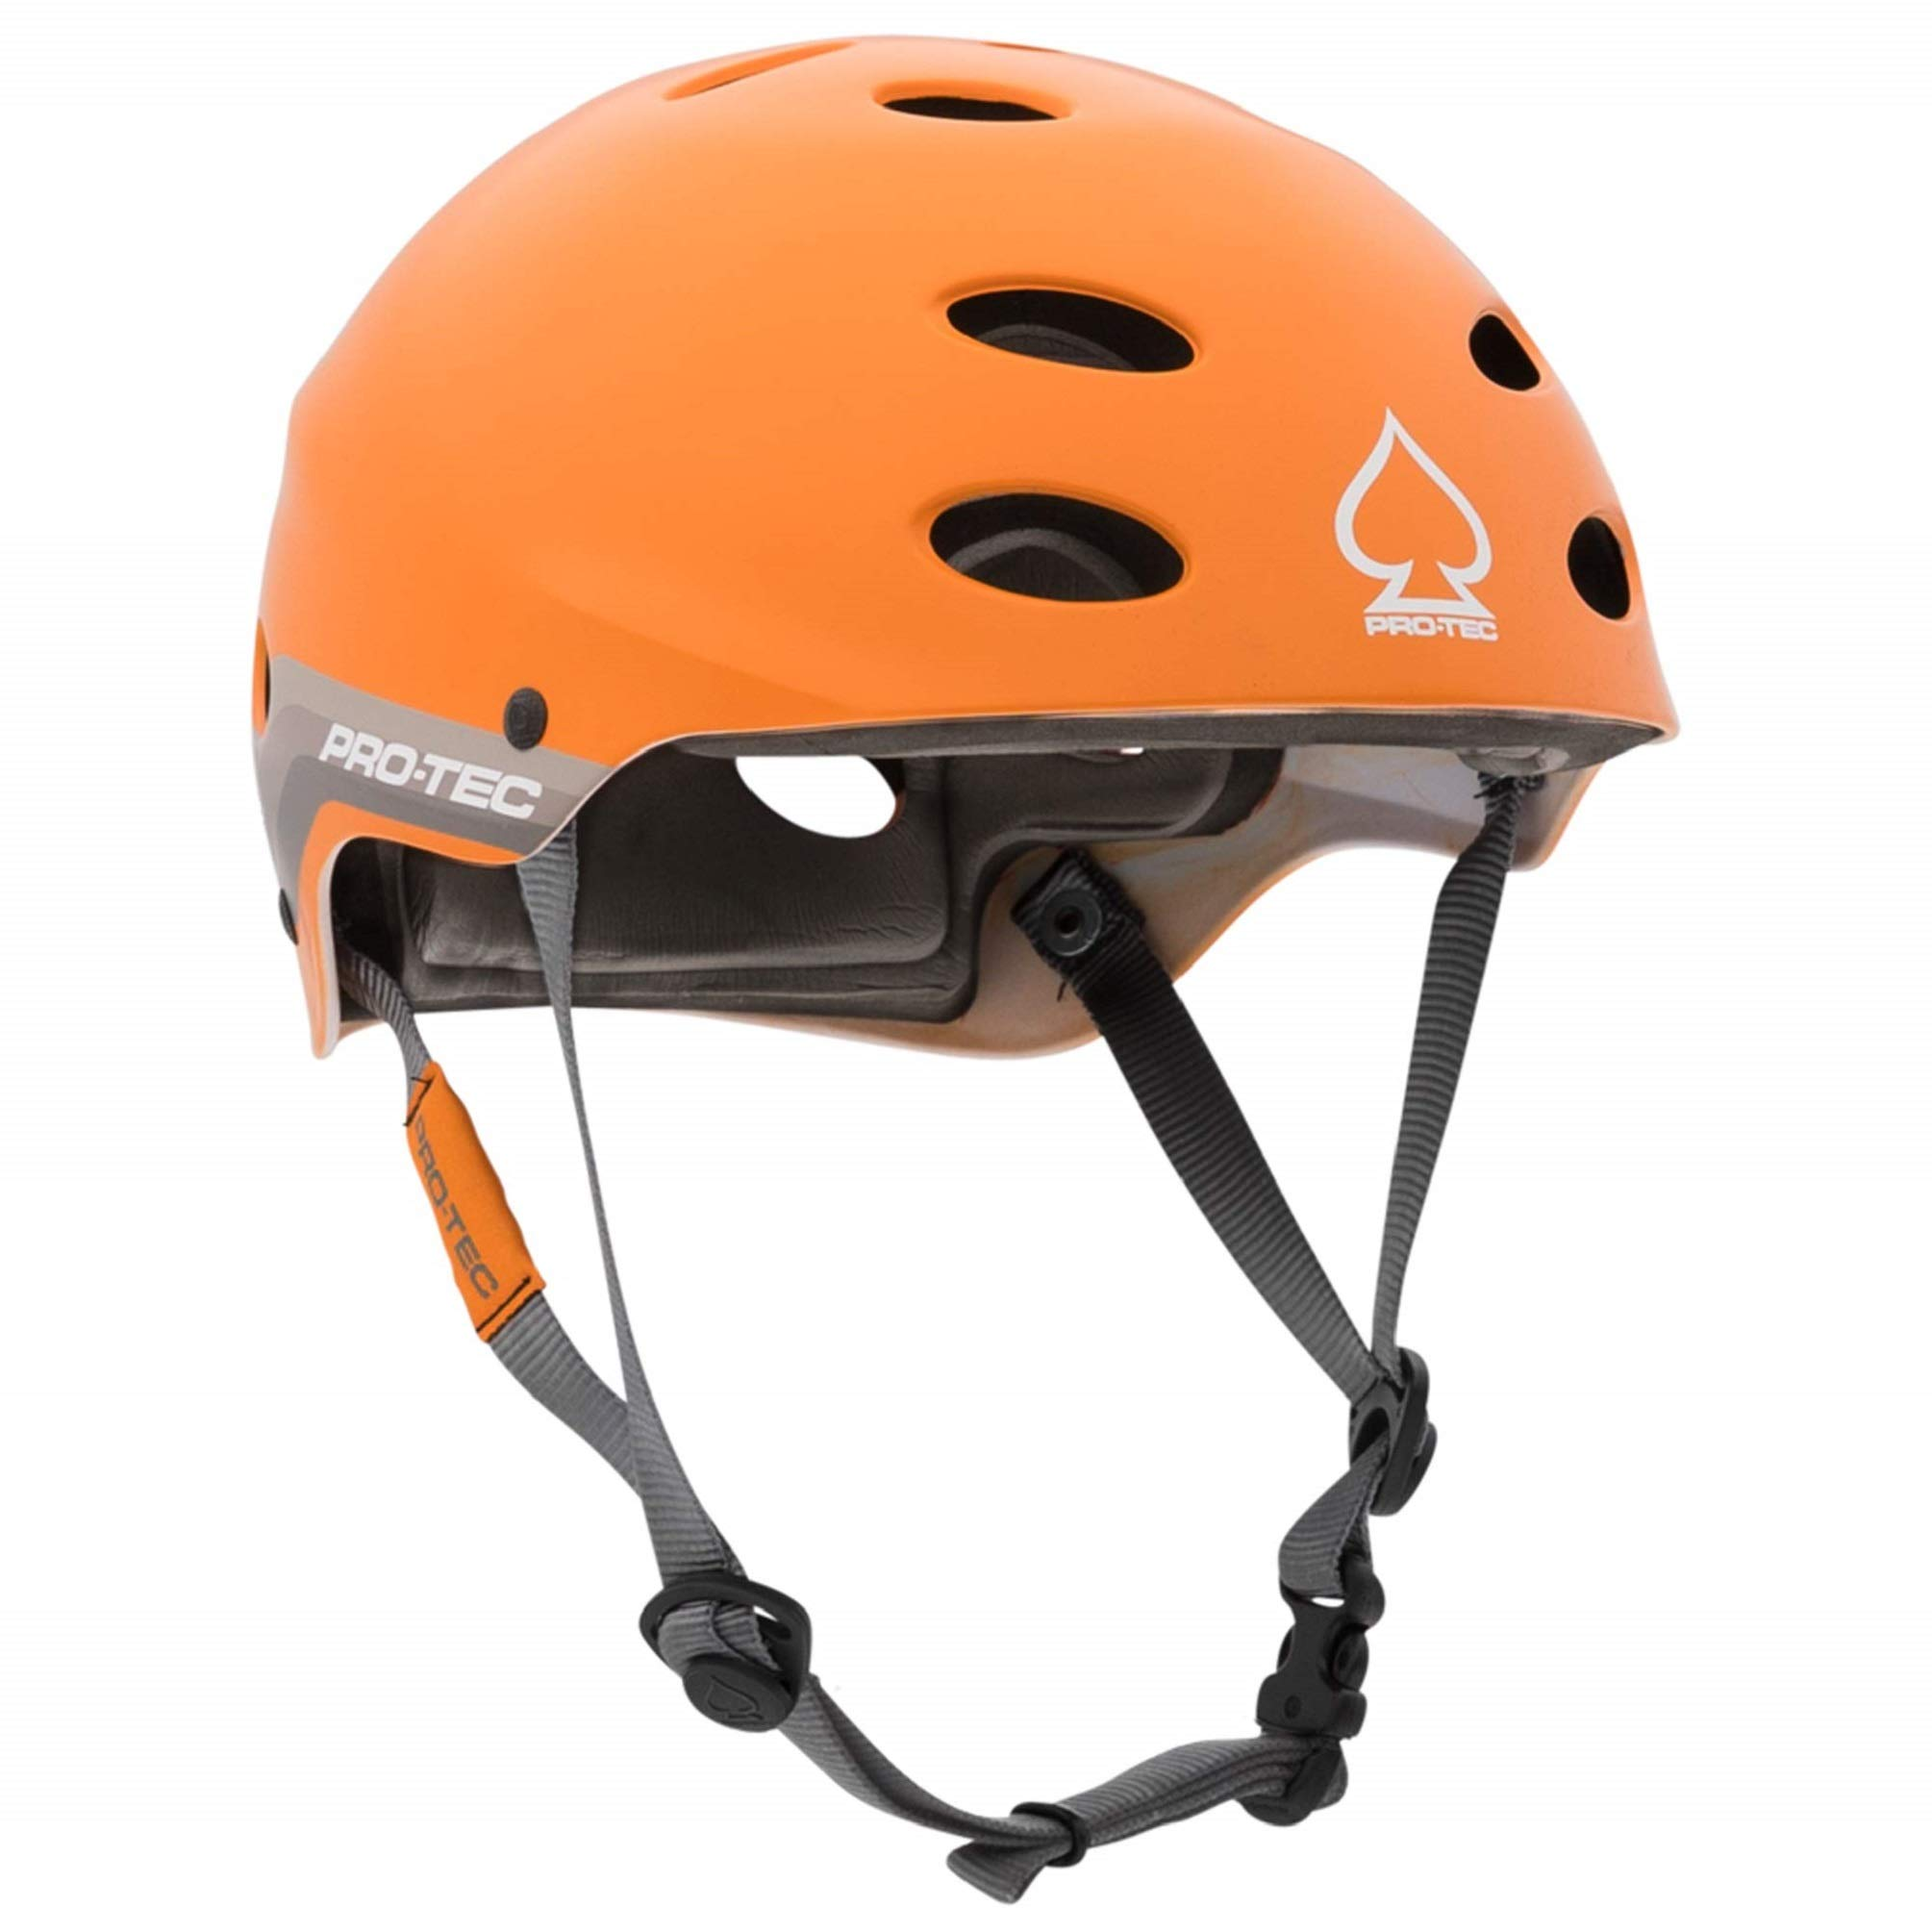 Pro-Tec - Ace Water Helmet, Satin Orange Retro, XL by Pro-Tec